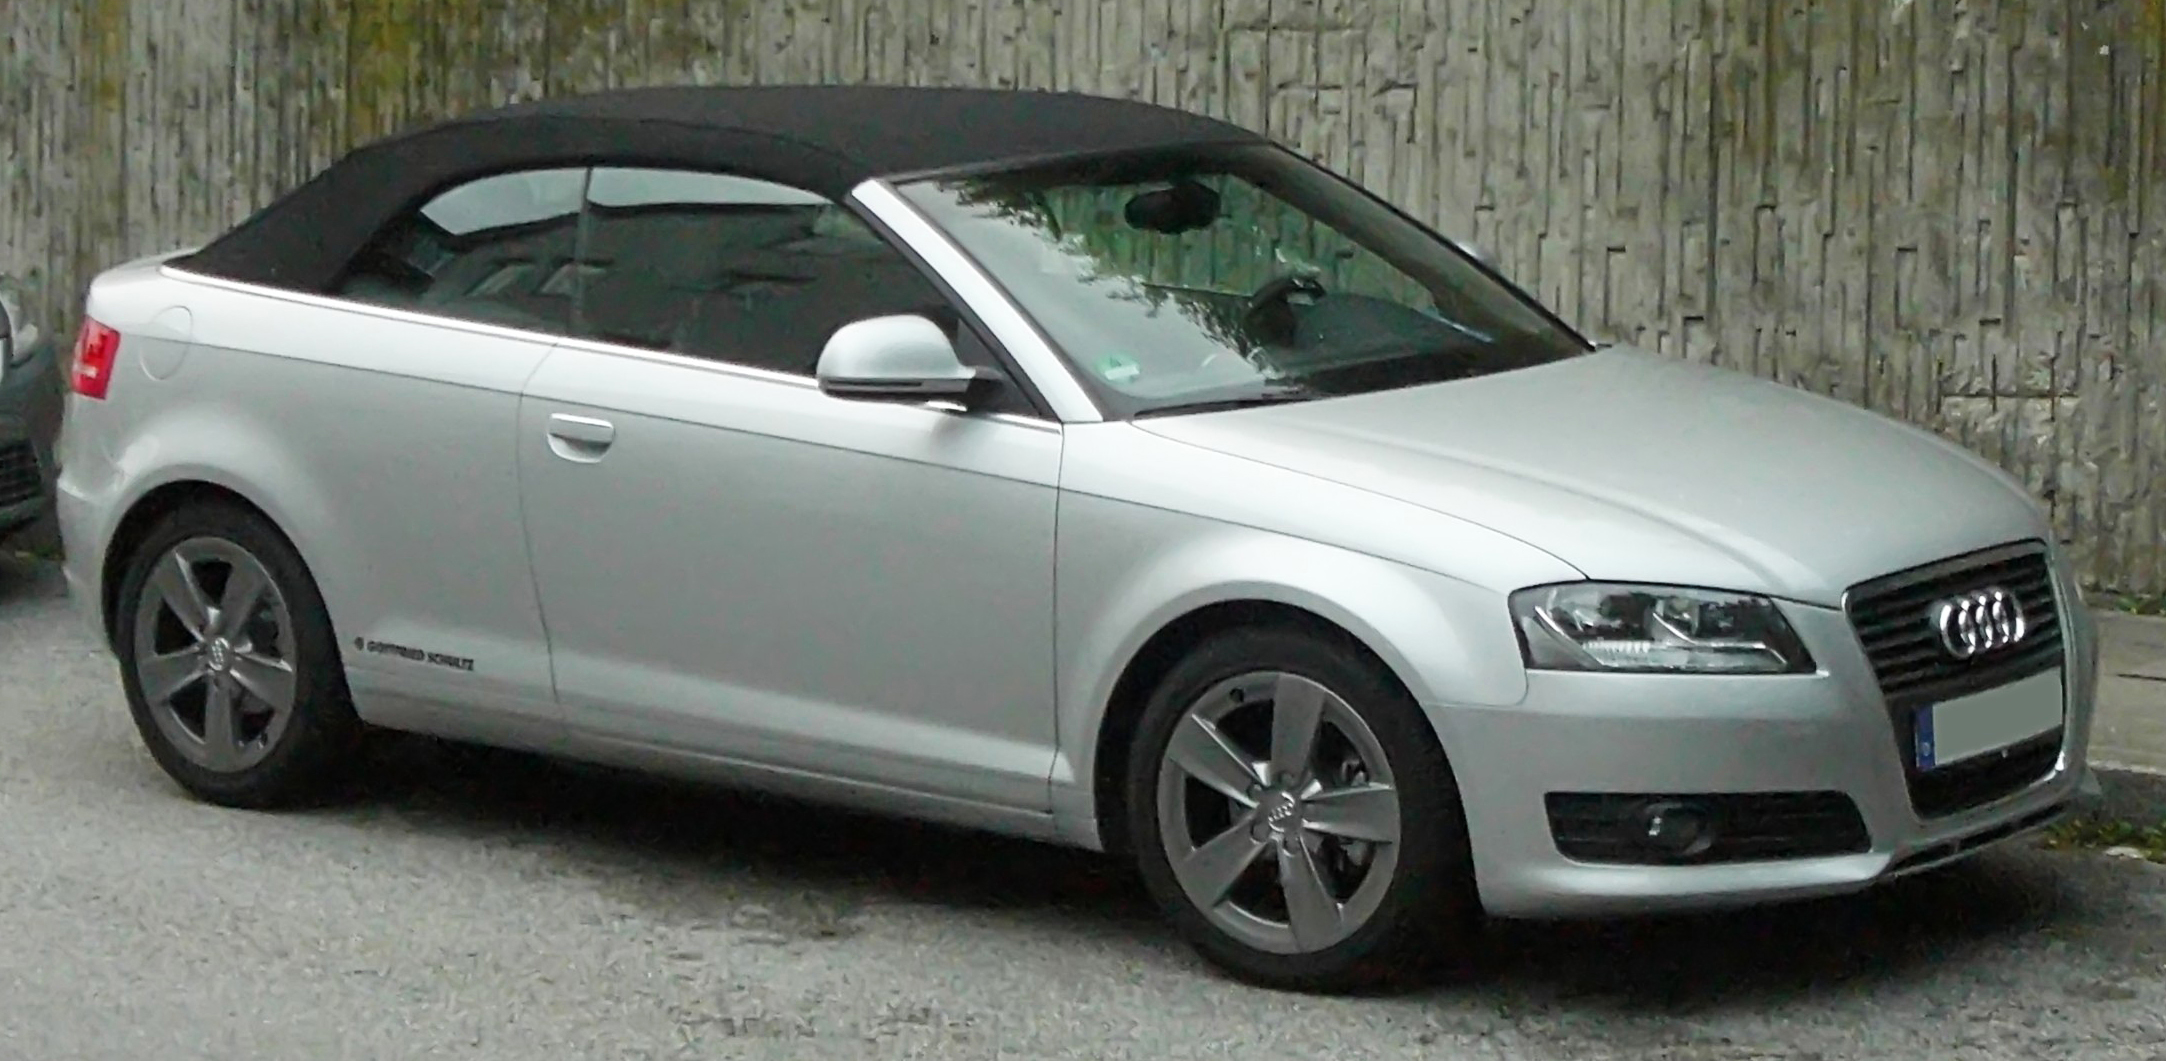 file audi a3 cabriolet 2008 front wikimedia commons. Black Bedroom Furniture Sets. Home Design Ideas